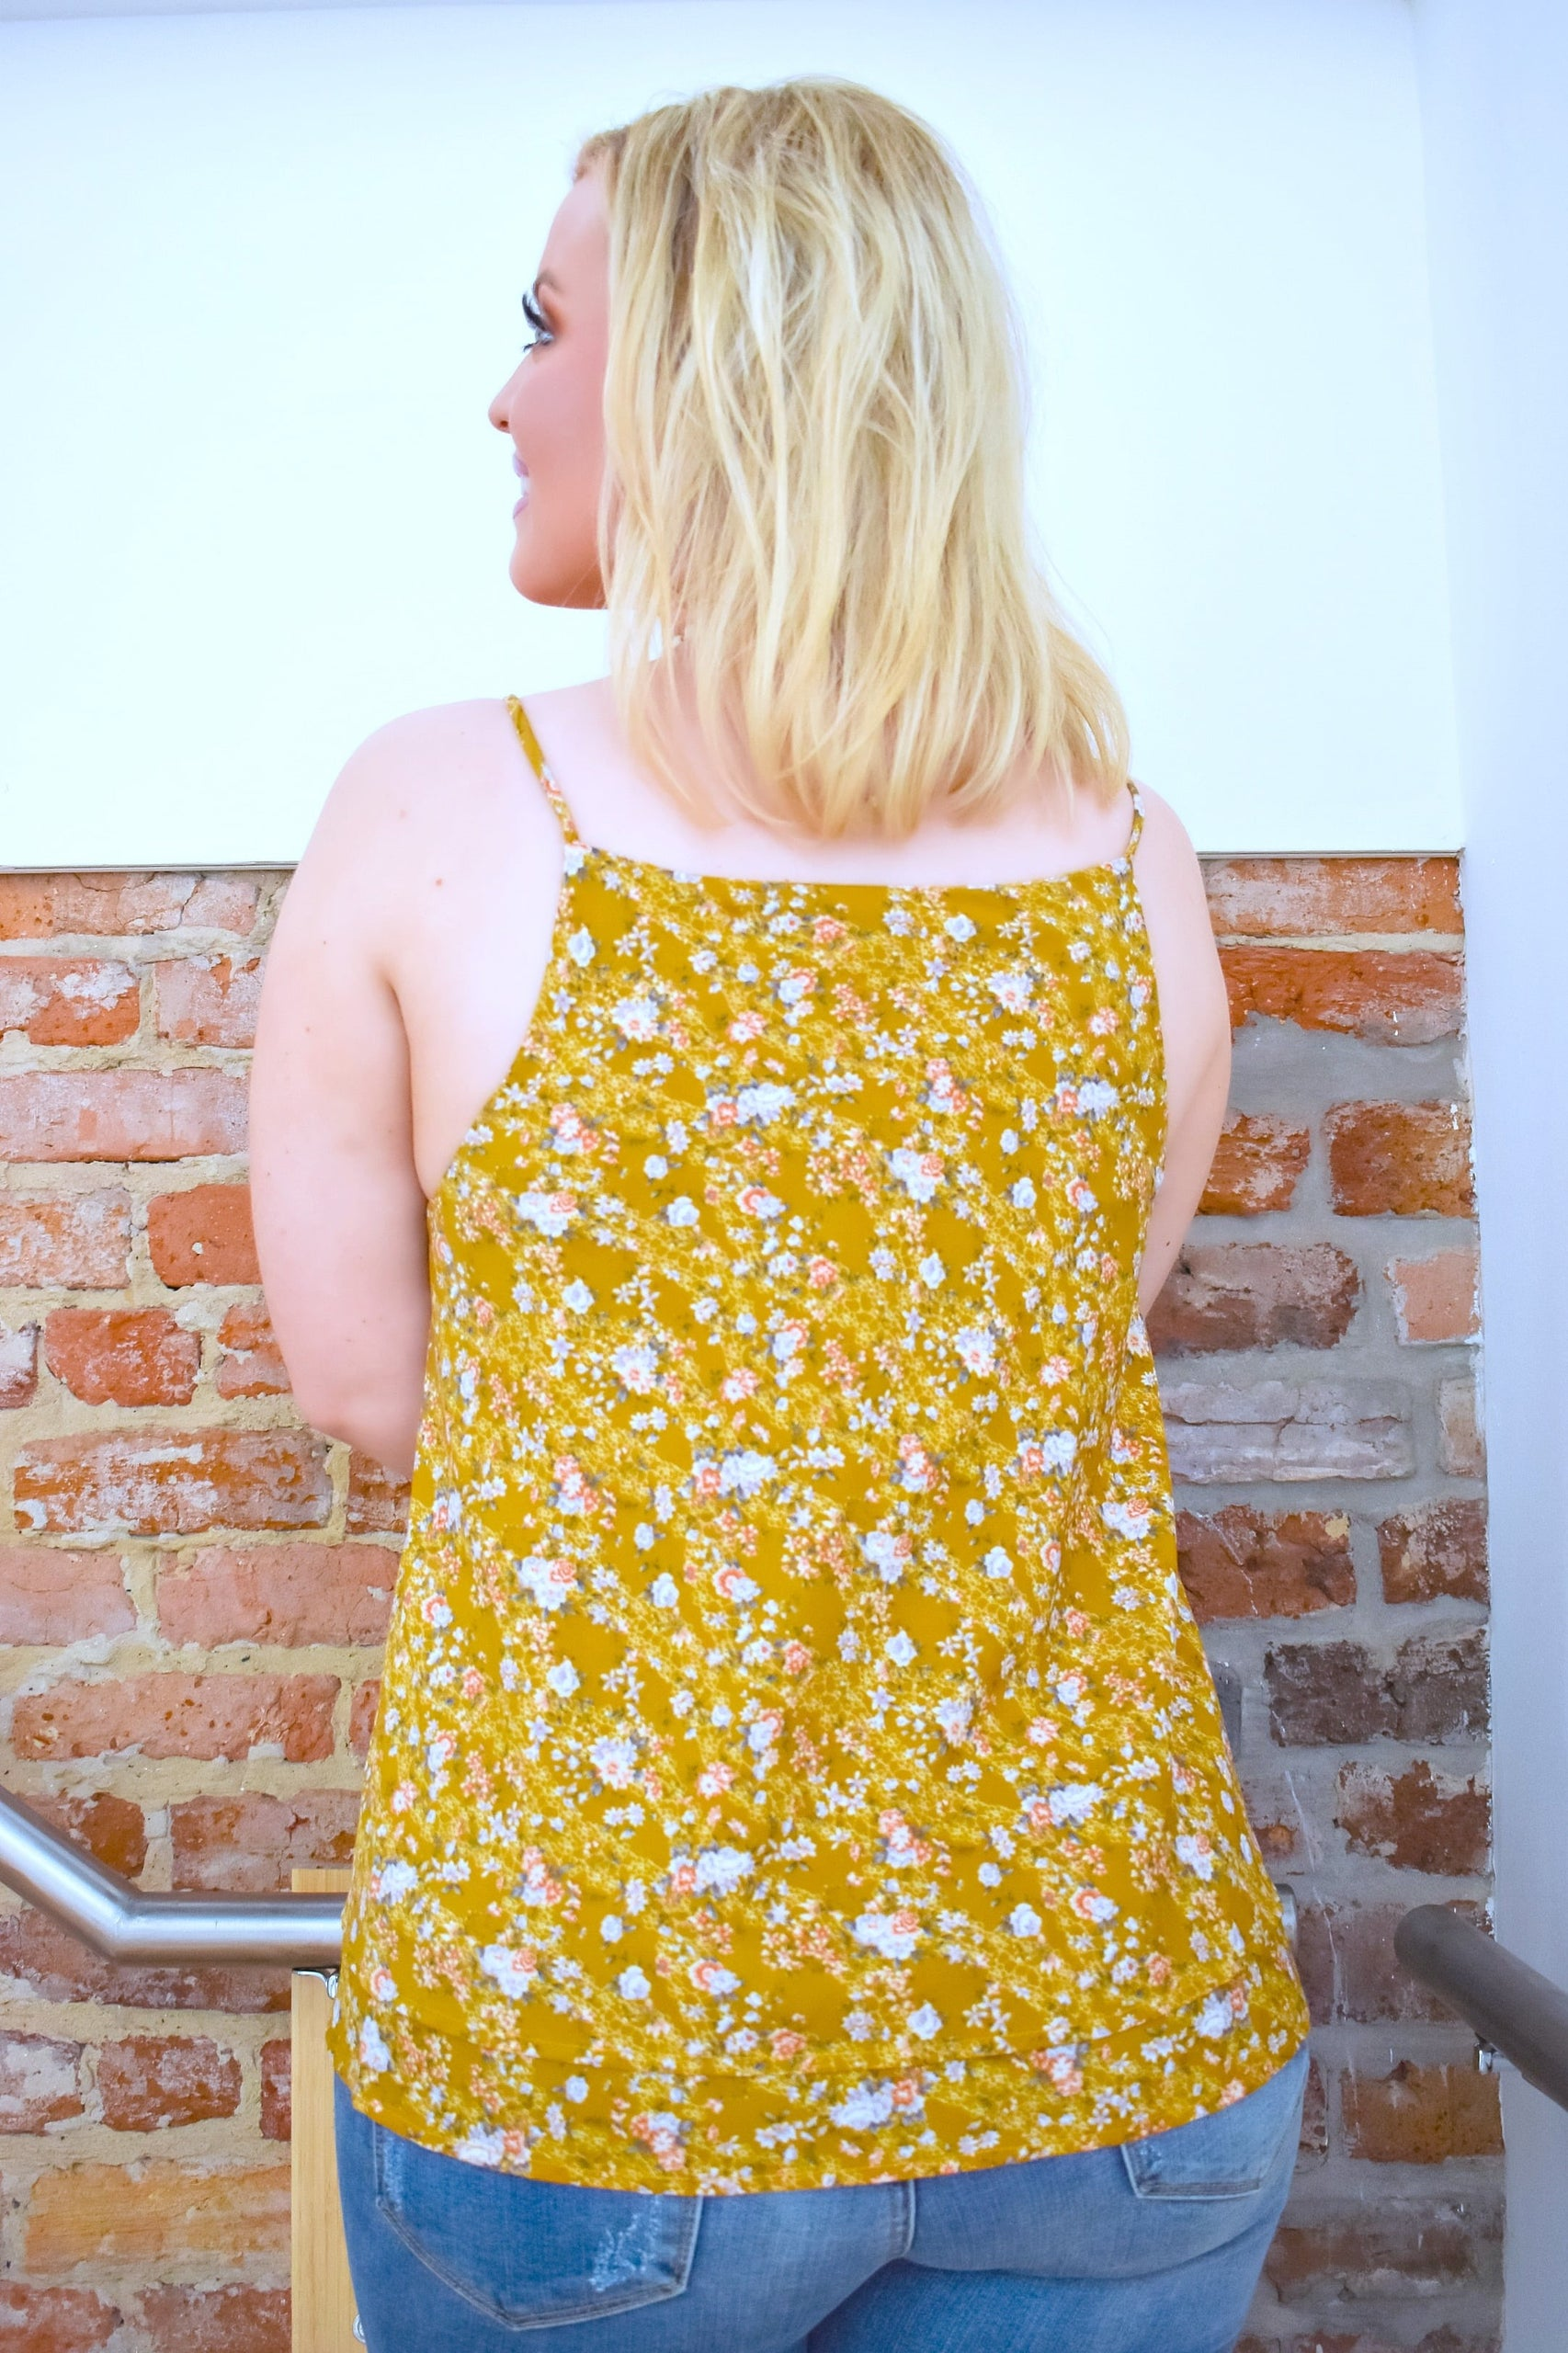 Load image into Gallery viewer, Had Your Shot Floral Top - Marigold